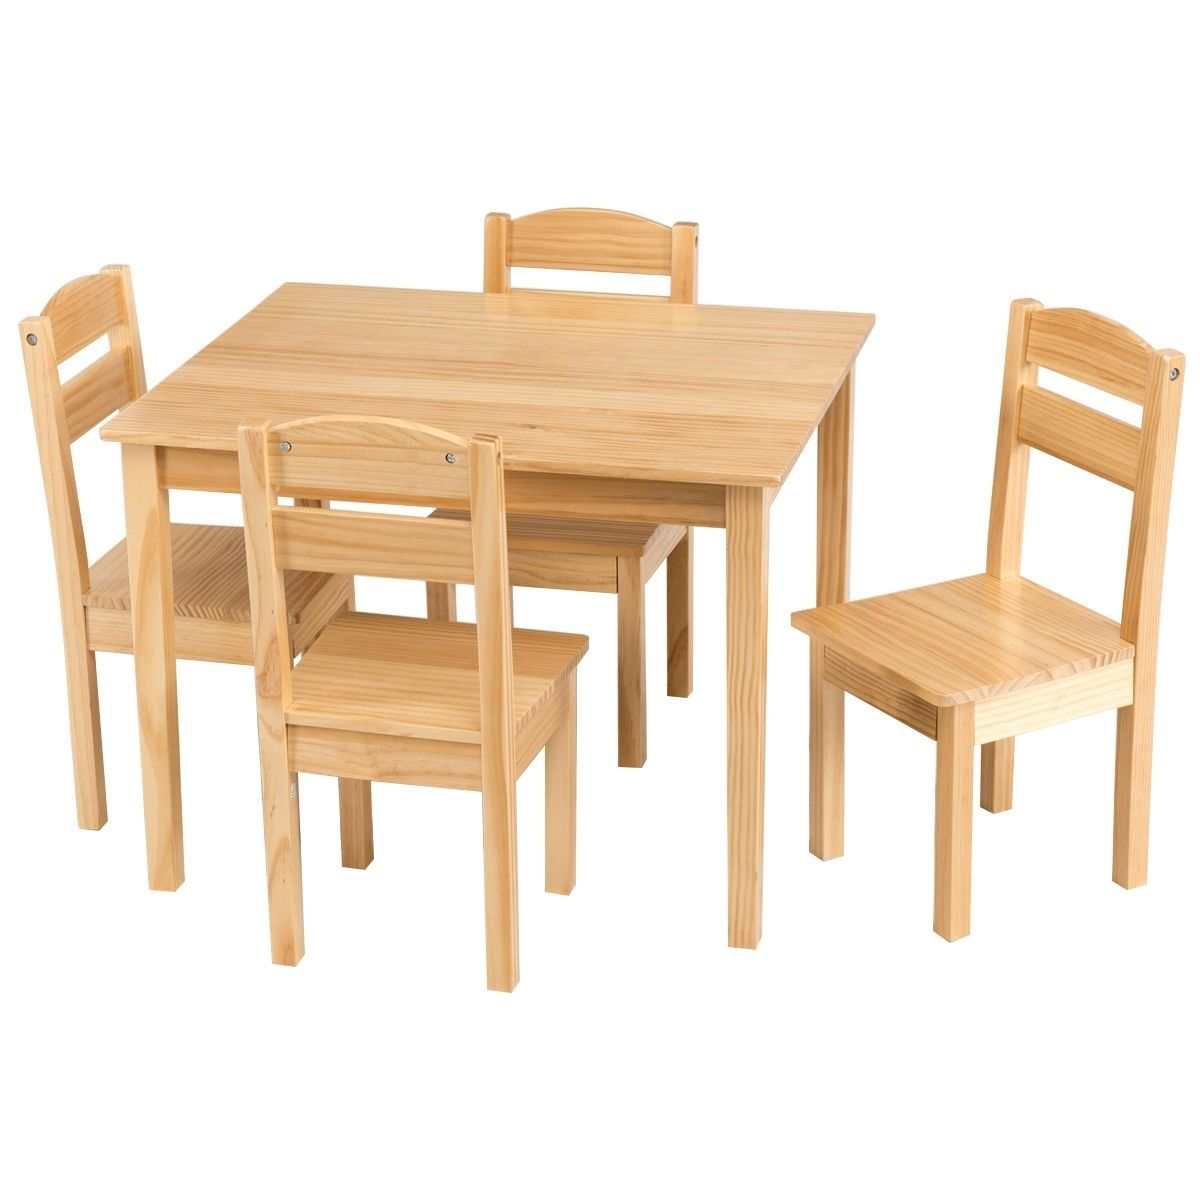 5 Pcs Kids Pine Wood Table Chair Set 84 95 Free Shipping This